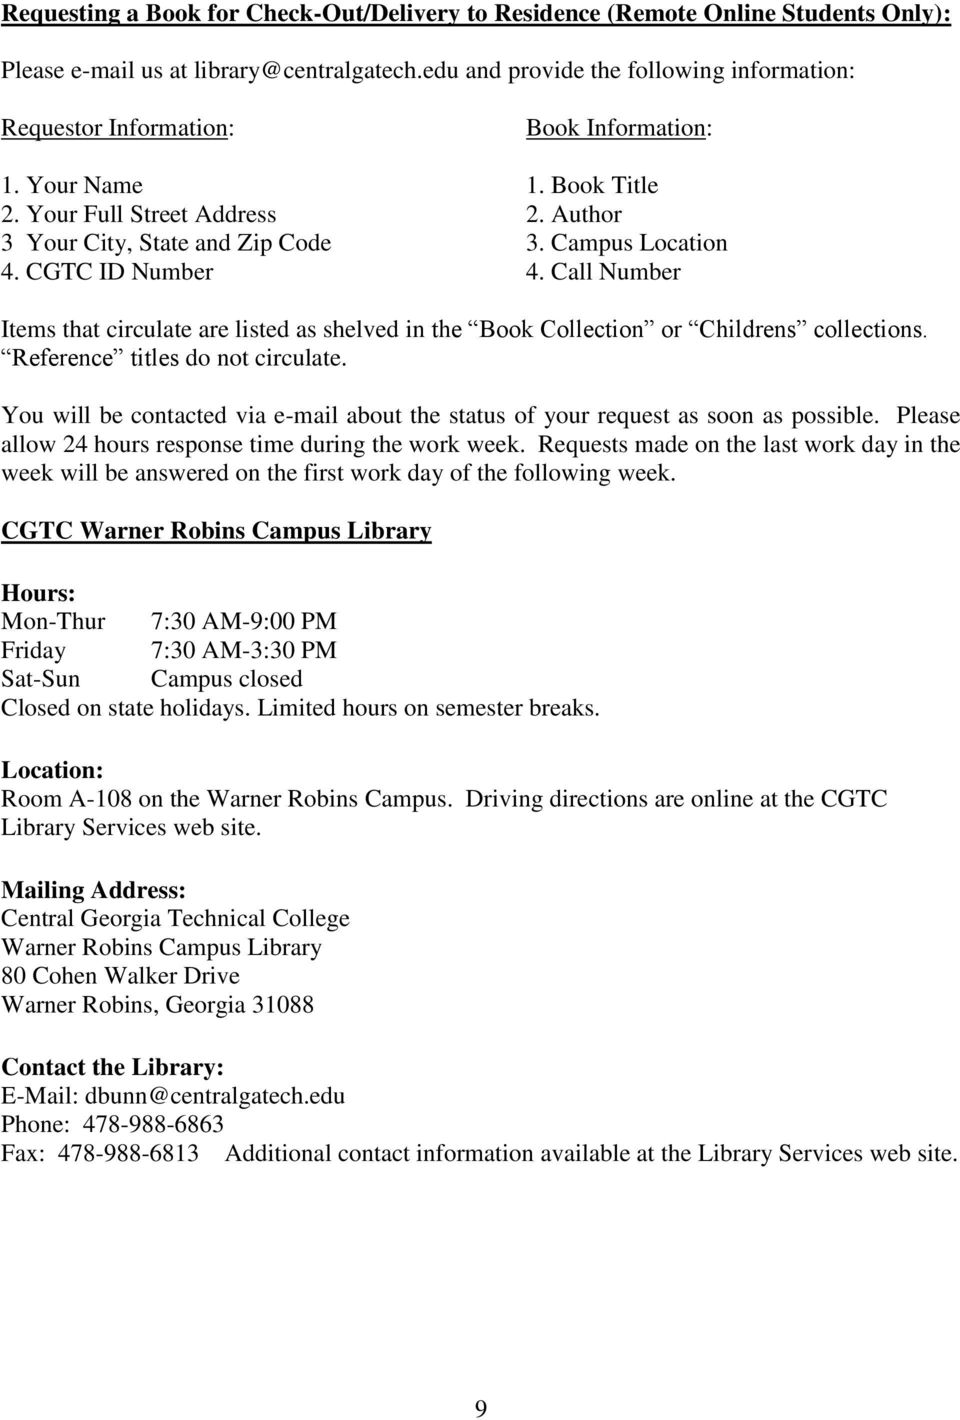 Campus Location 4. CGTC ID Number 4. Call Number Items that circulate are listed as shelved in the Book Collection or Childrens collections. Reference titles do not circulate.